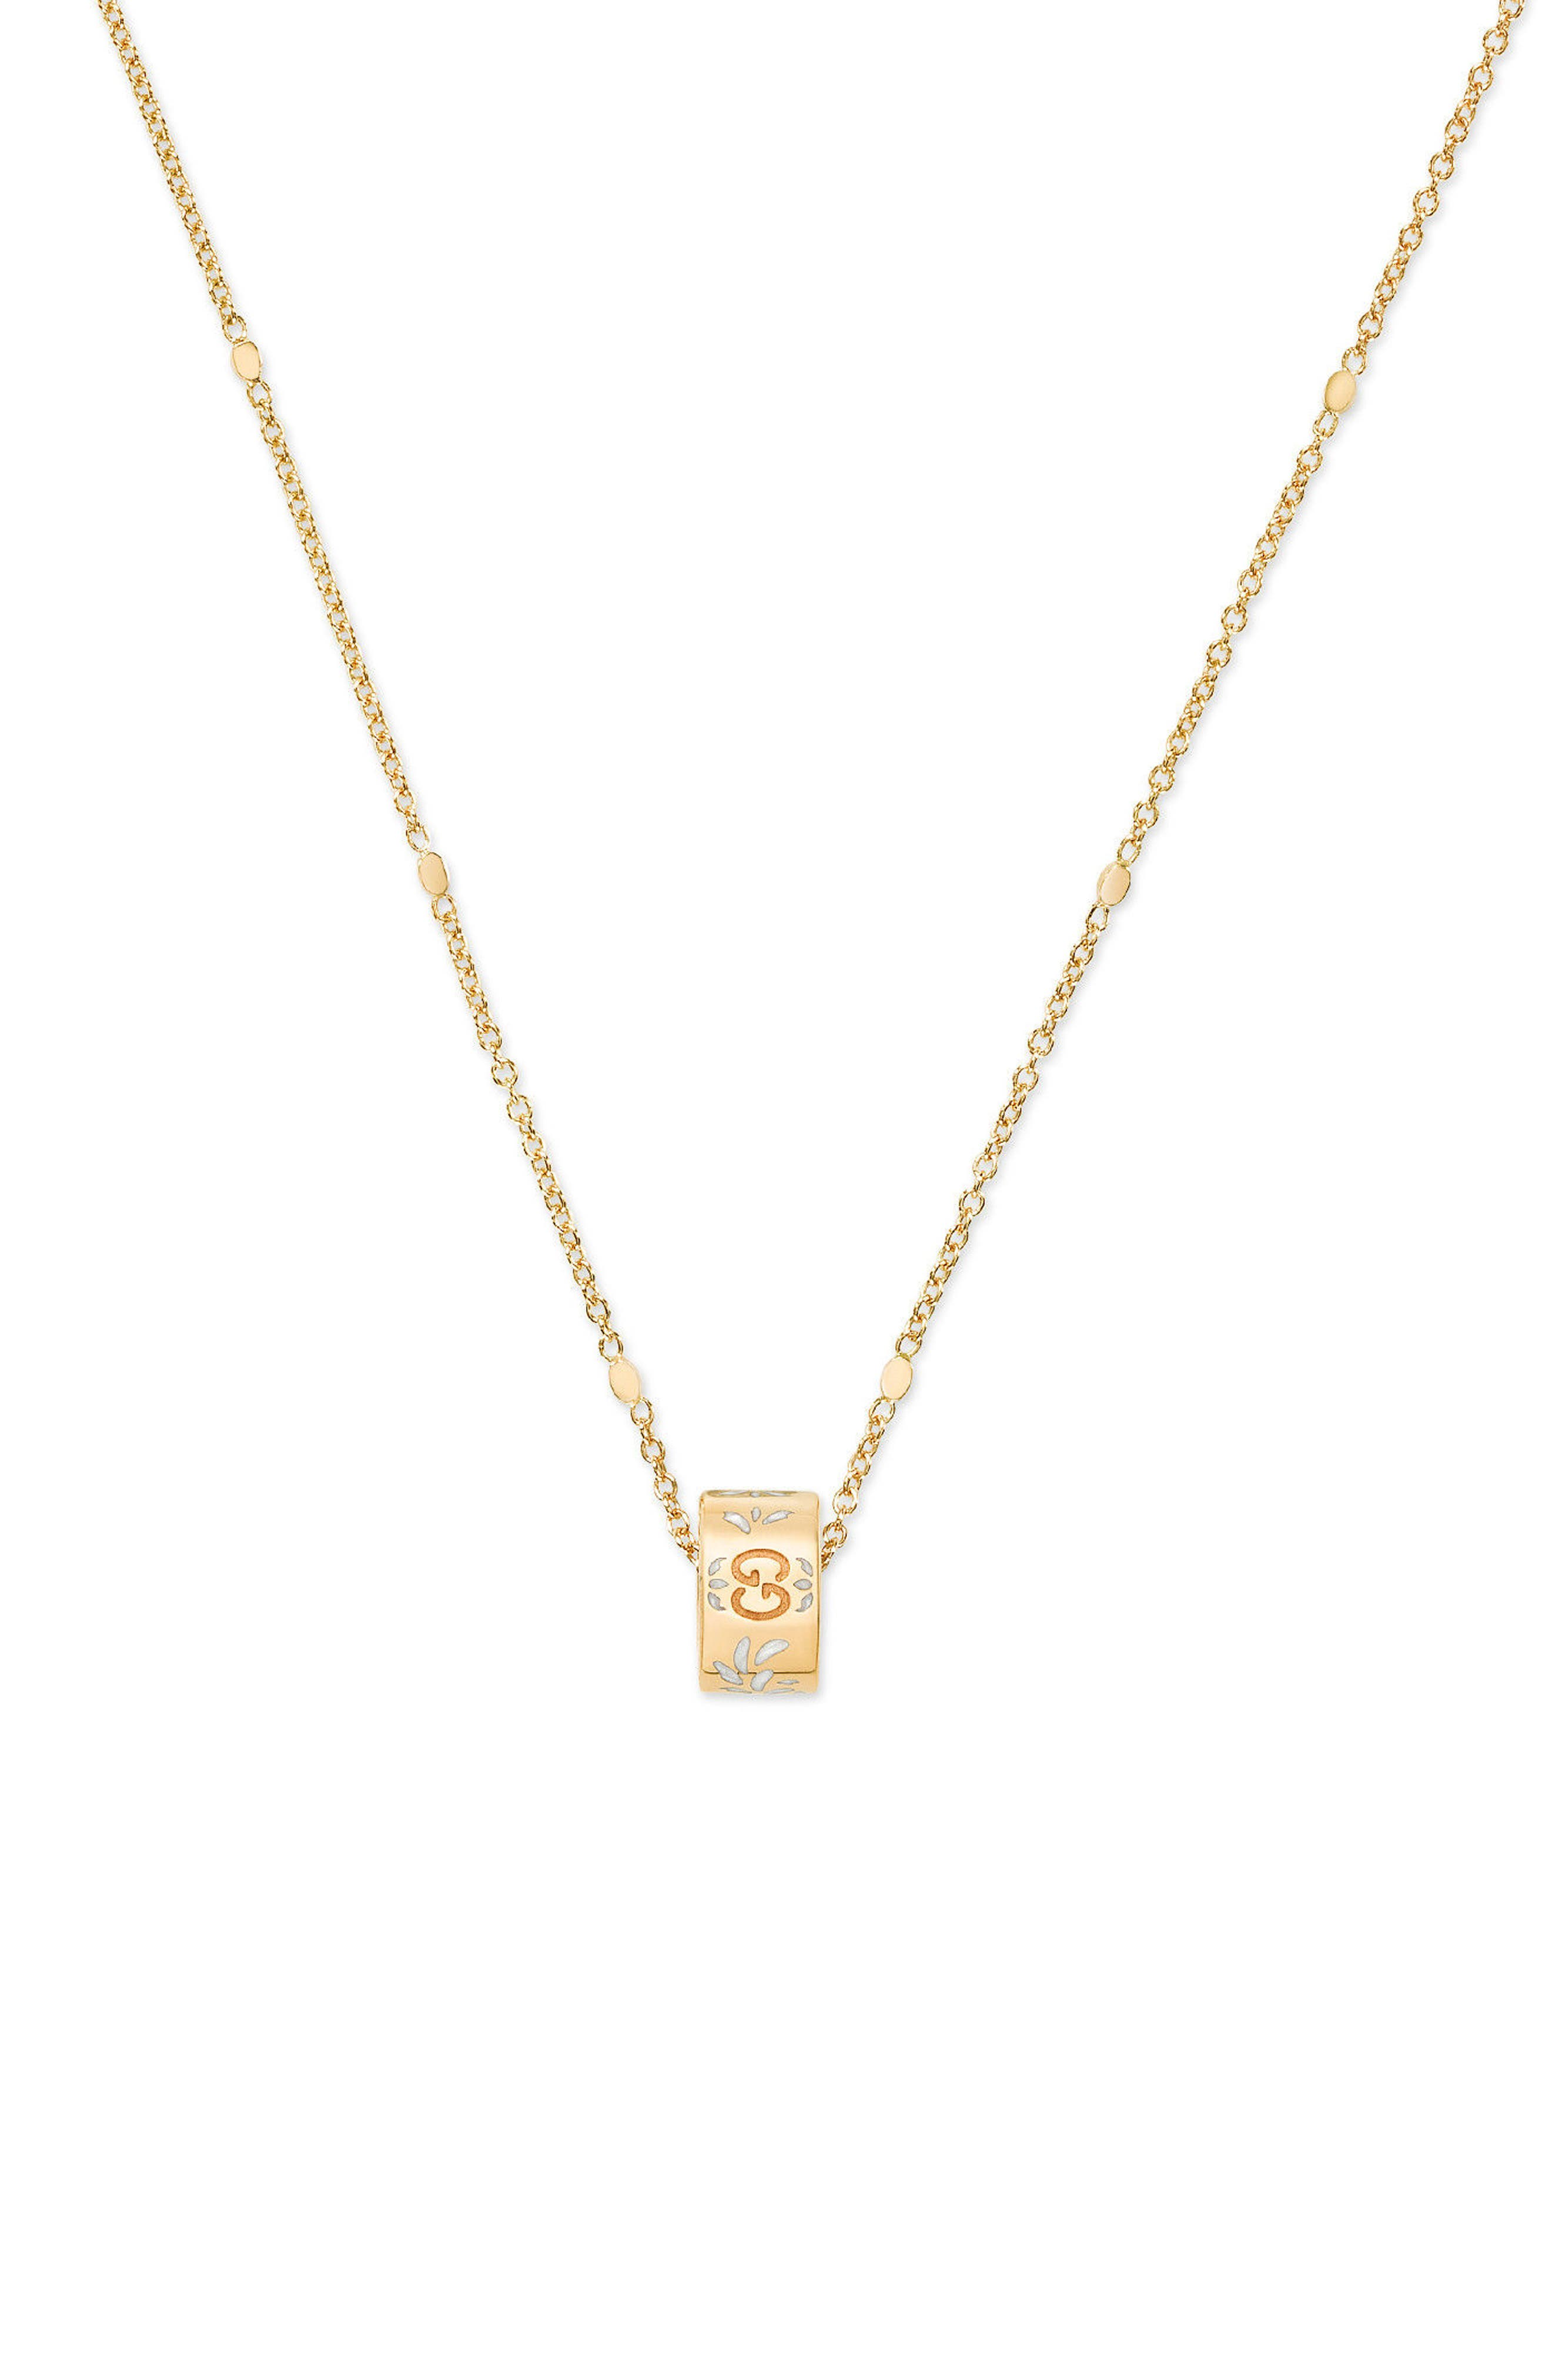 Icon Pendant Necklace,                         Main,                         color, YELLOW GOLD